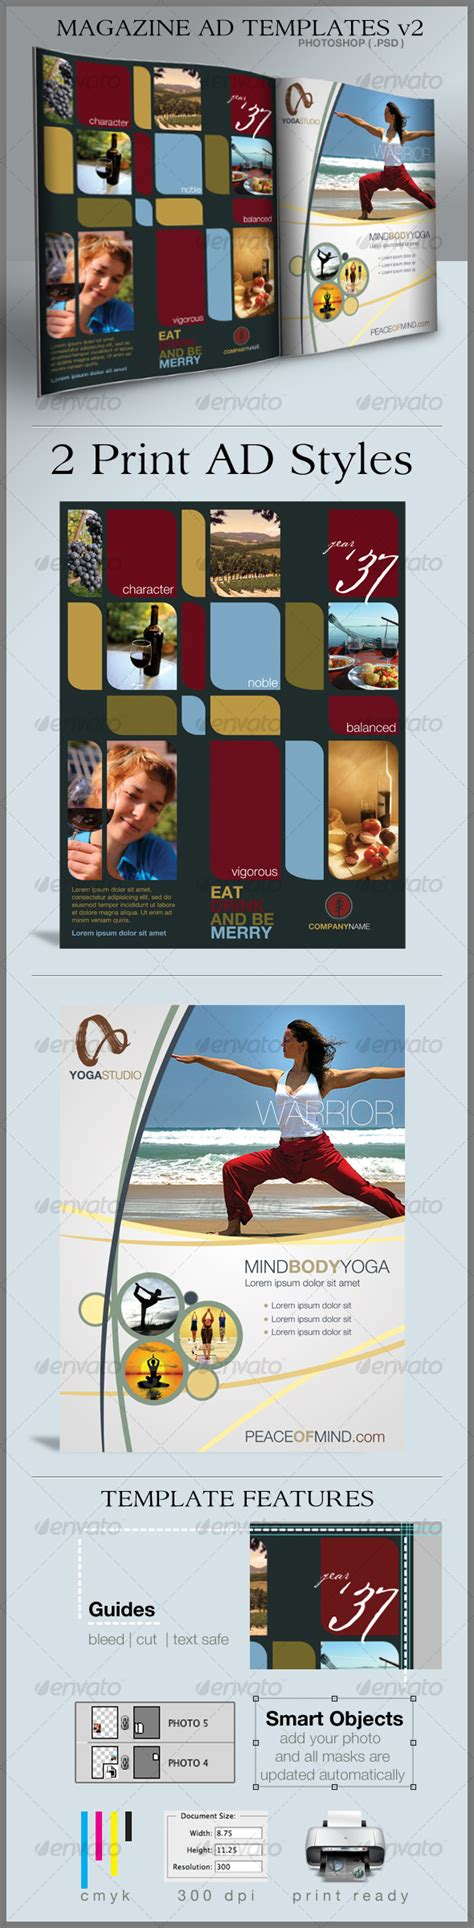 print layout in photoshop print ad templates and layouts for photoshop 2 cursive q